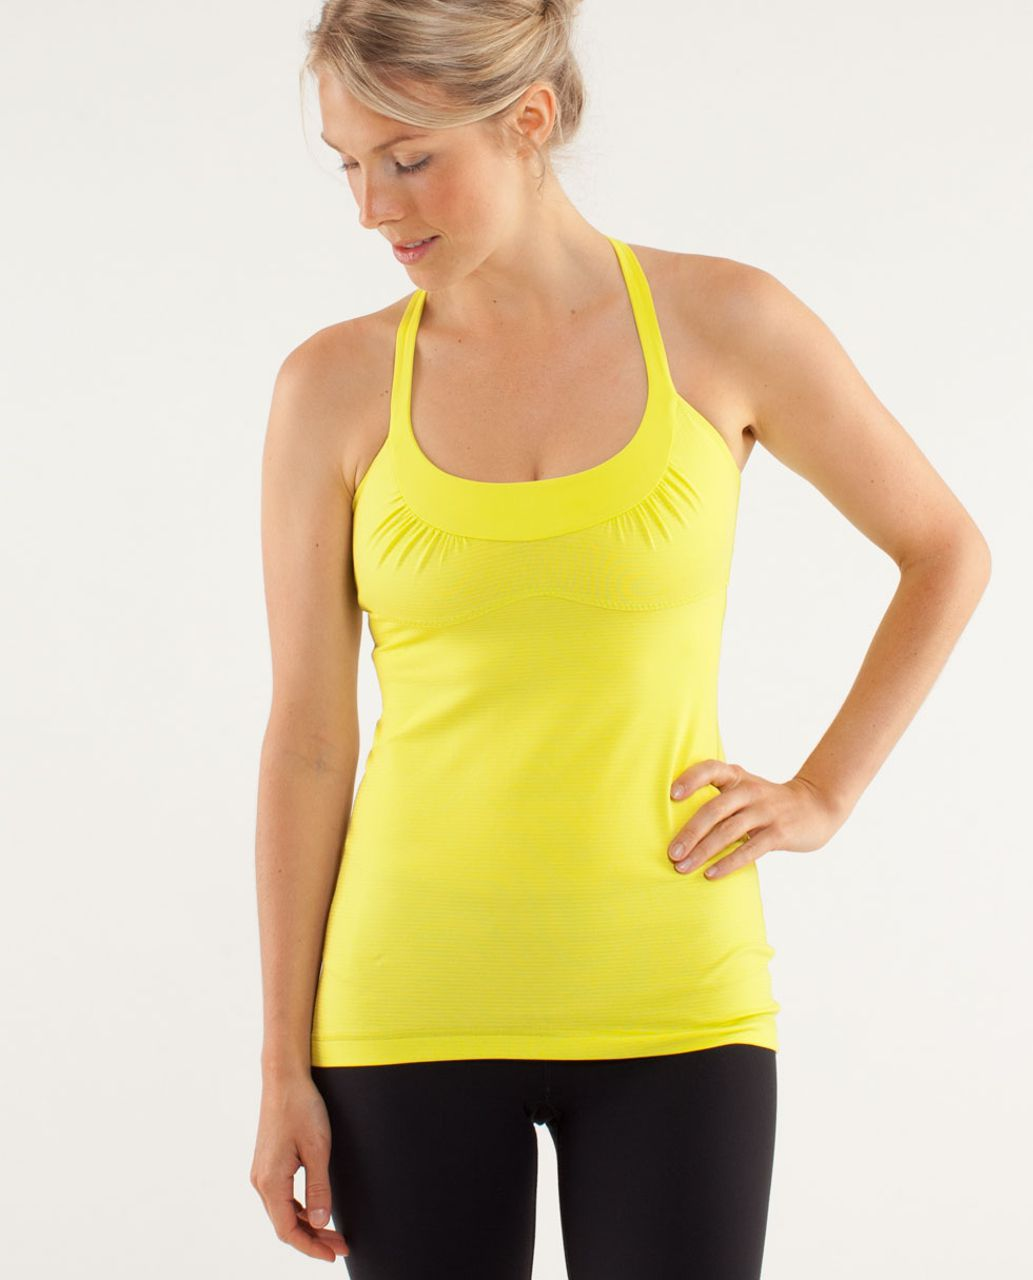 Lululemon Scoop Me Up Tank - Tonka Stripe Split Pea / Heathered Split Pea / Split Pea